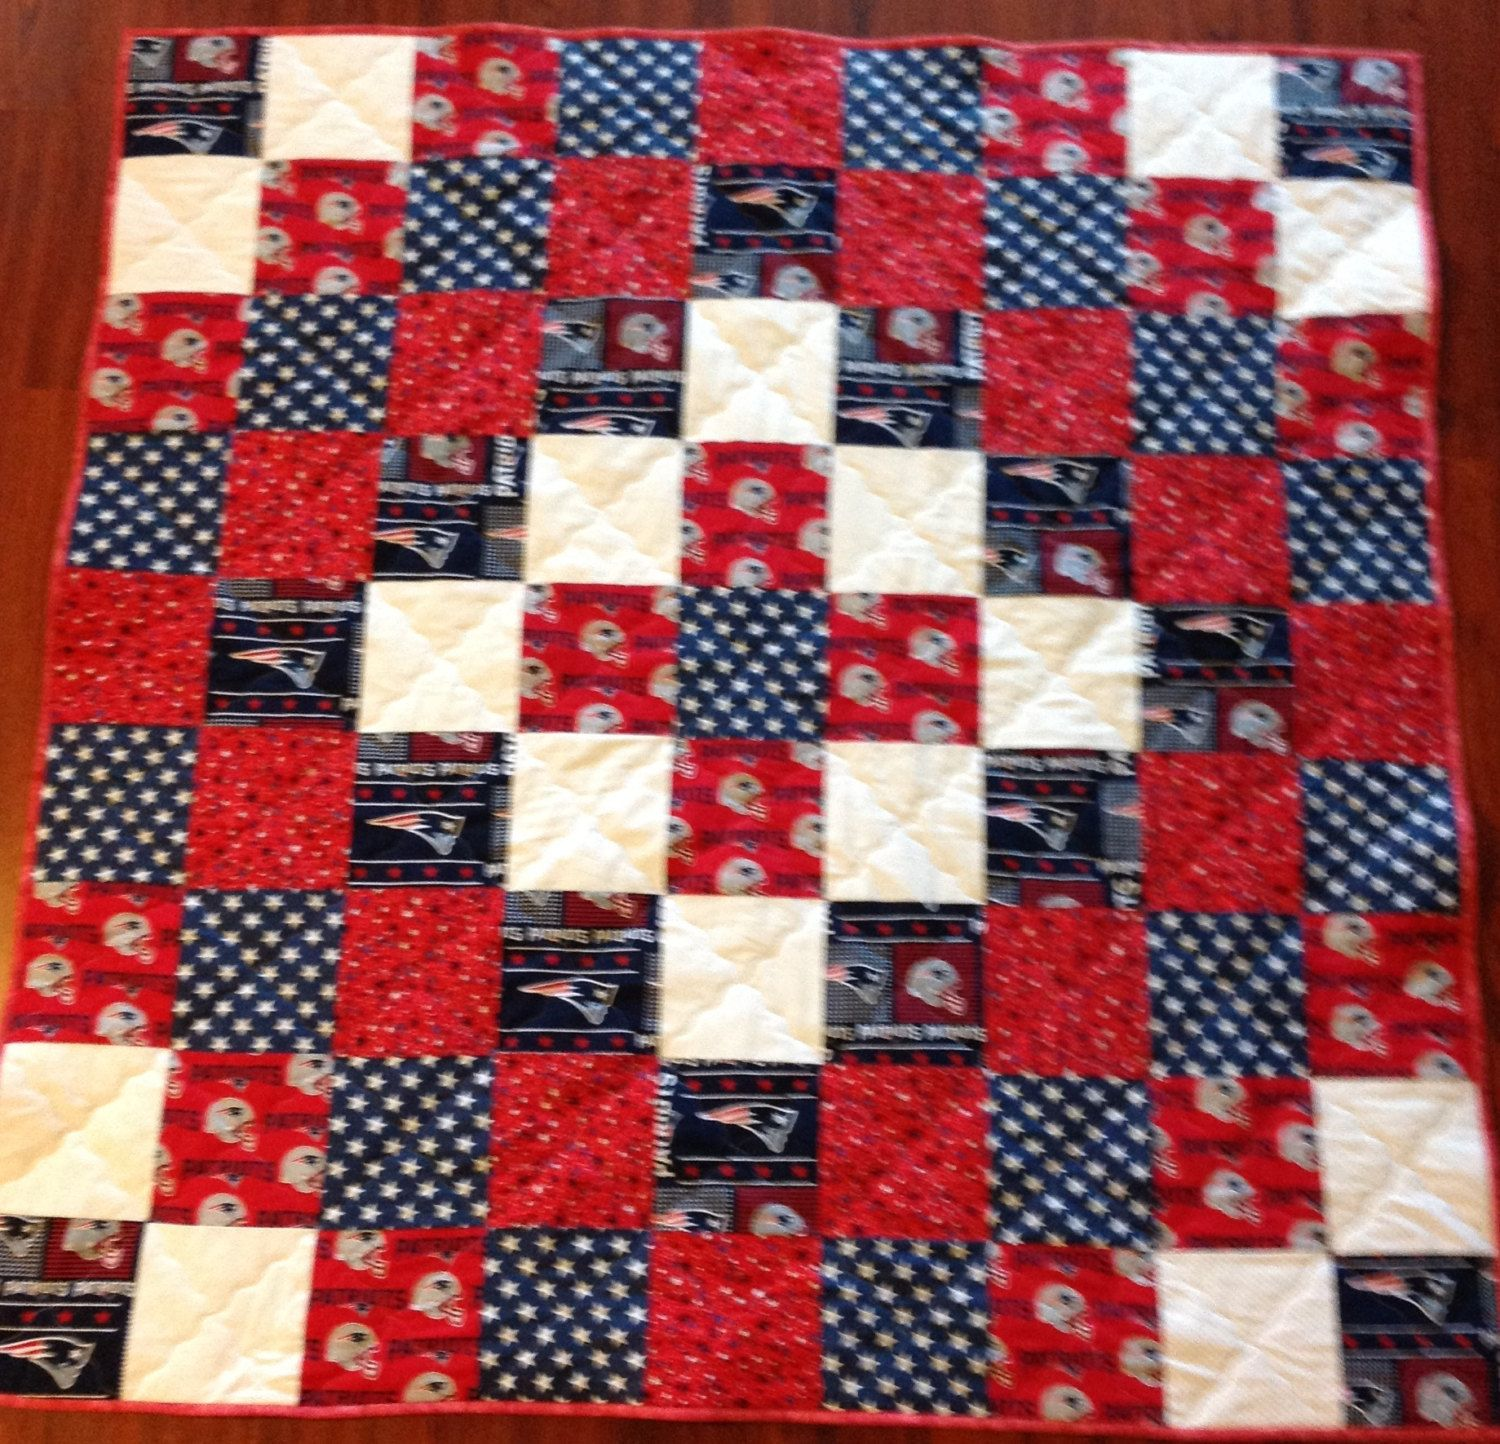 New England Patriots quilt 57x57 and other fabrics Blue white red stars